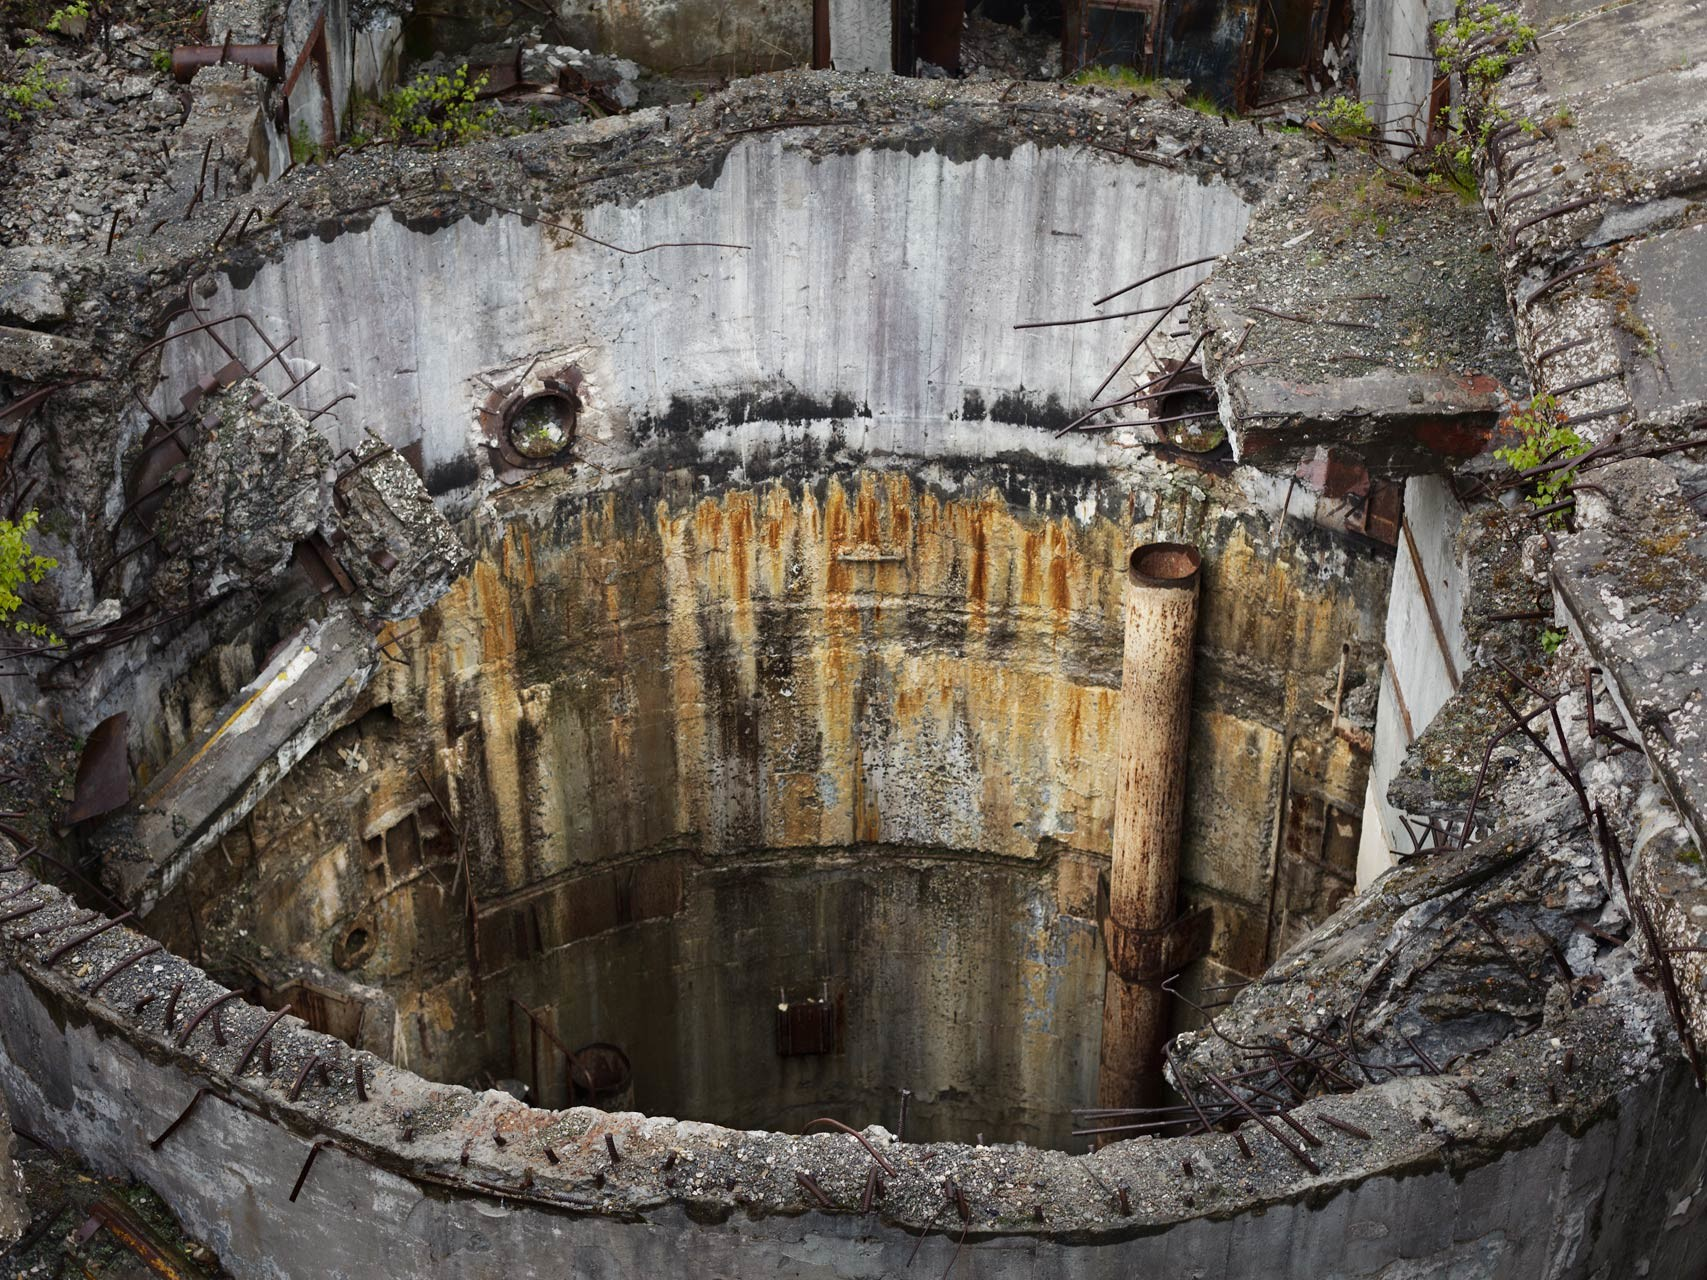 timo-stammberger-photography-russia-launch-pad-tunnel-cold-war-missiles-exploring-hole